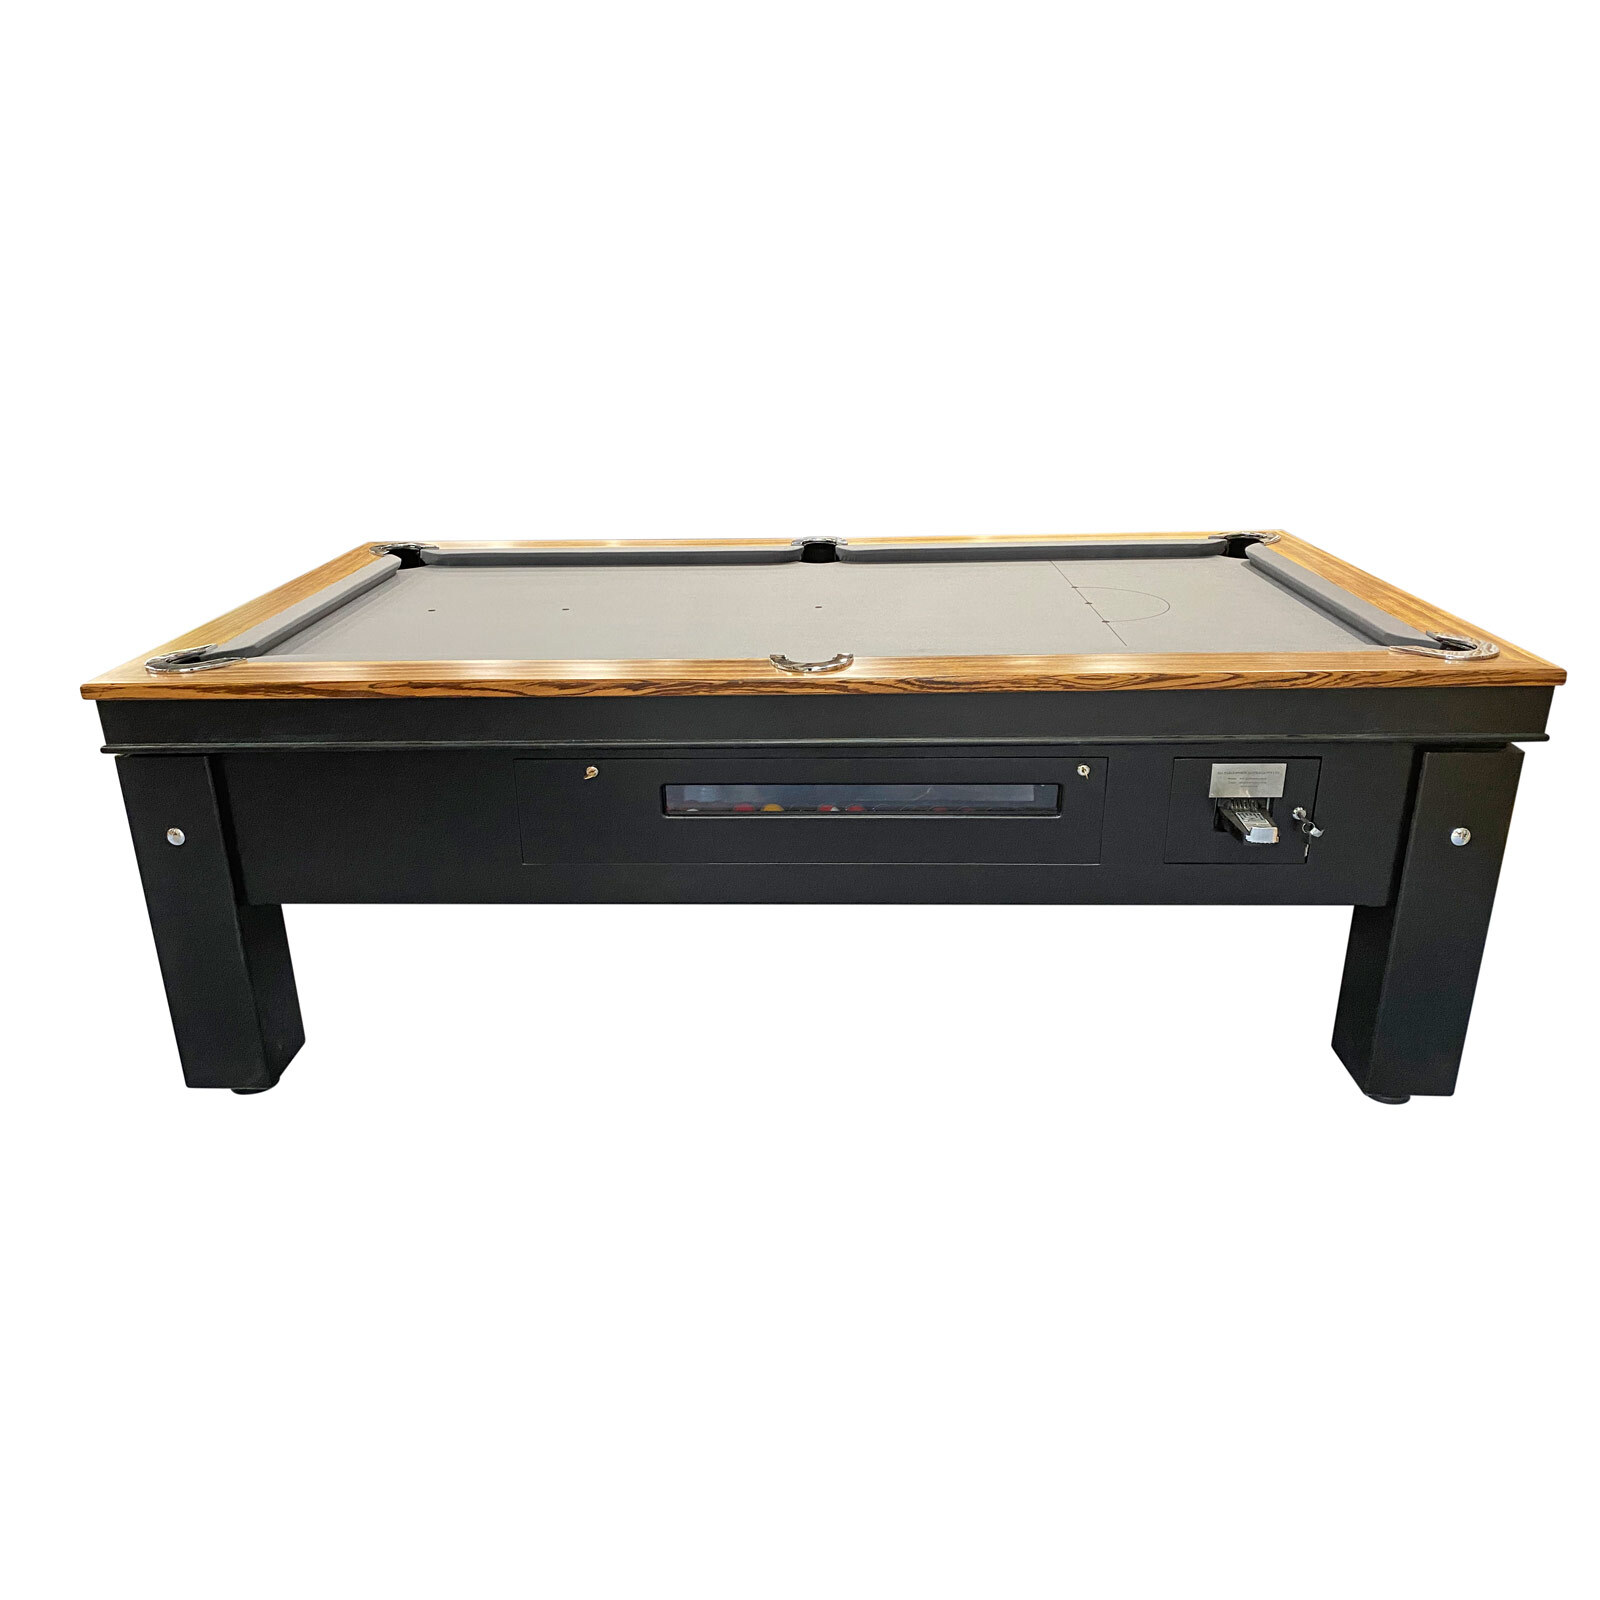 7 Foot Slate Coin Operated Pool Table with timber top & Legs (optional LED decoration)